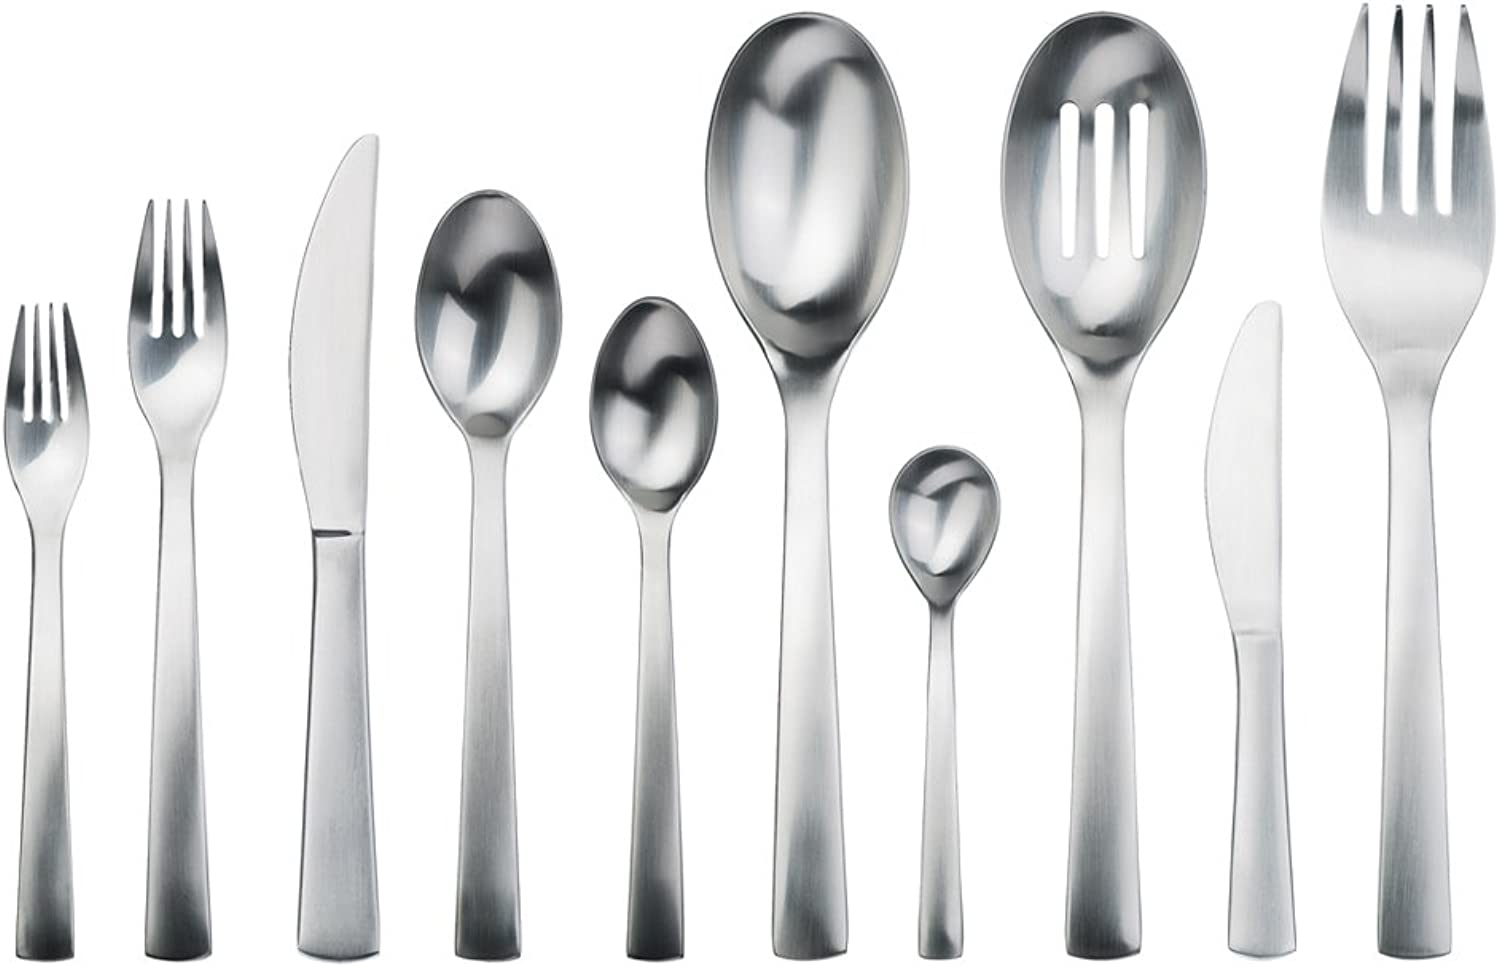 Gourmet Settings Carry On 45-Piece Flatware Set, Service for 8